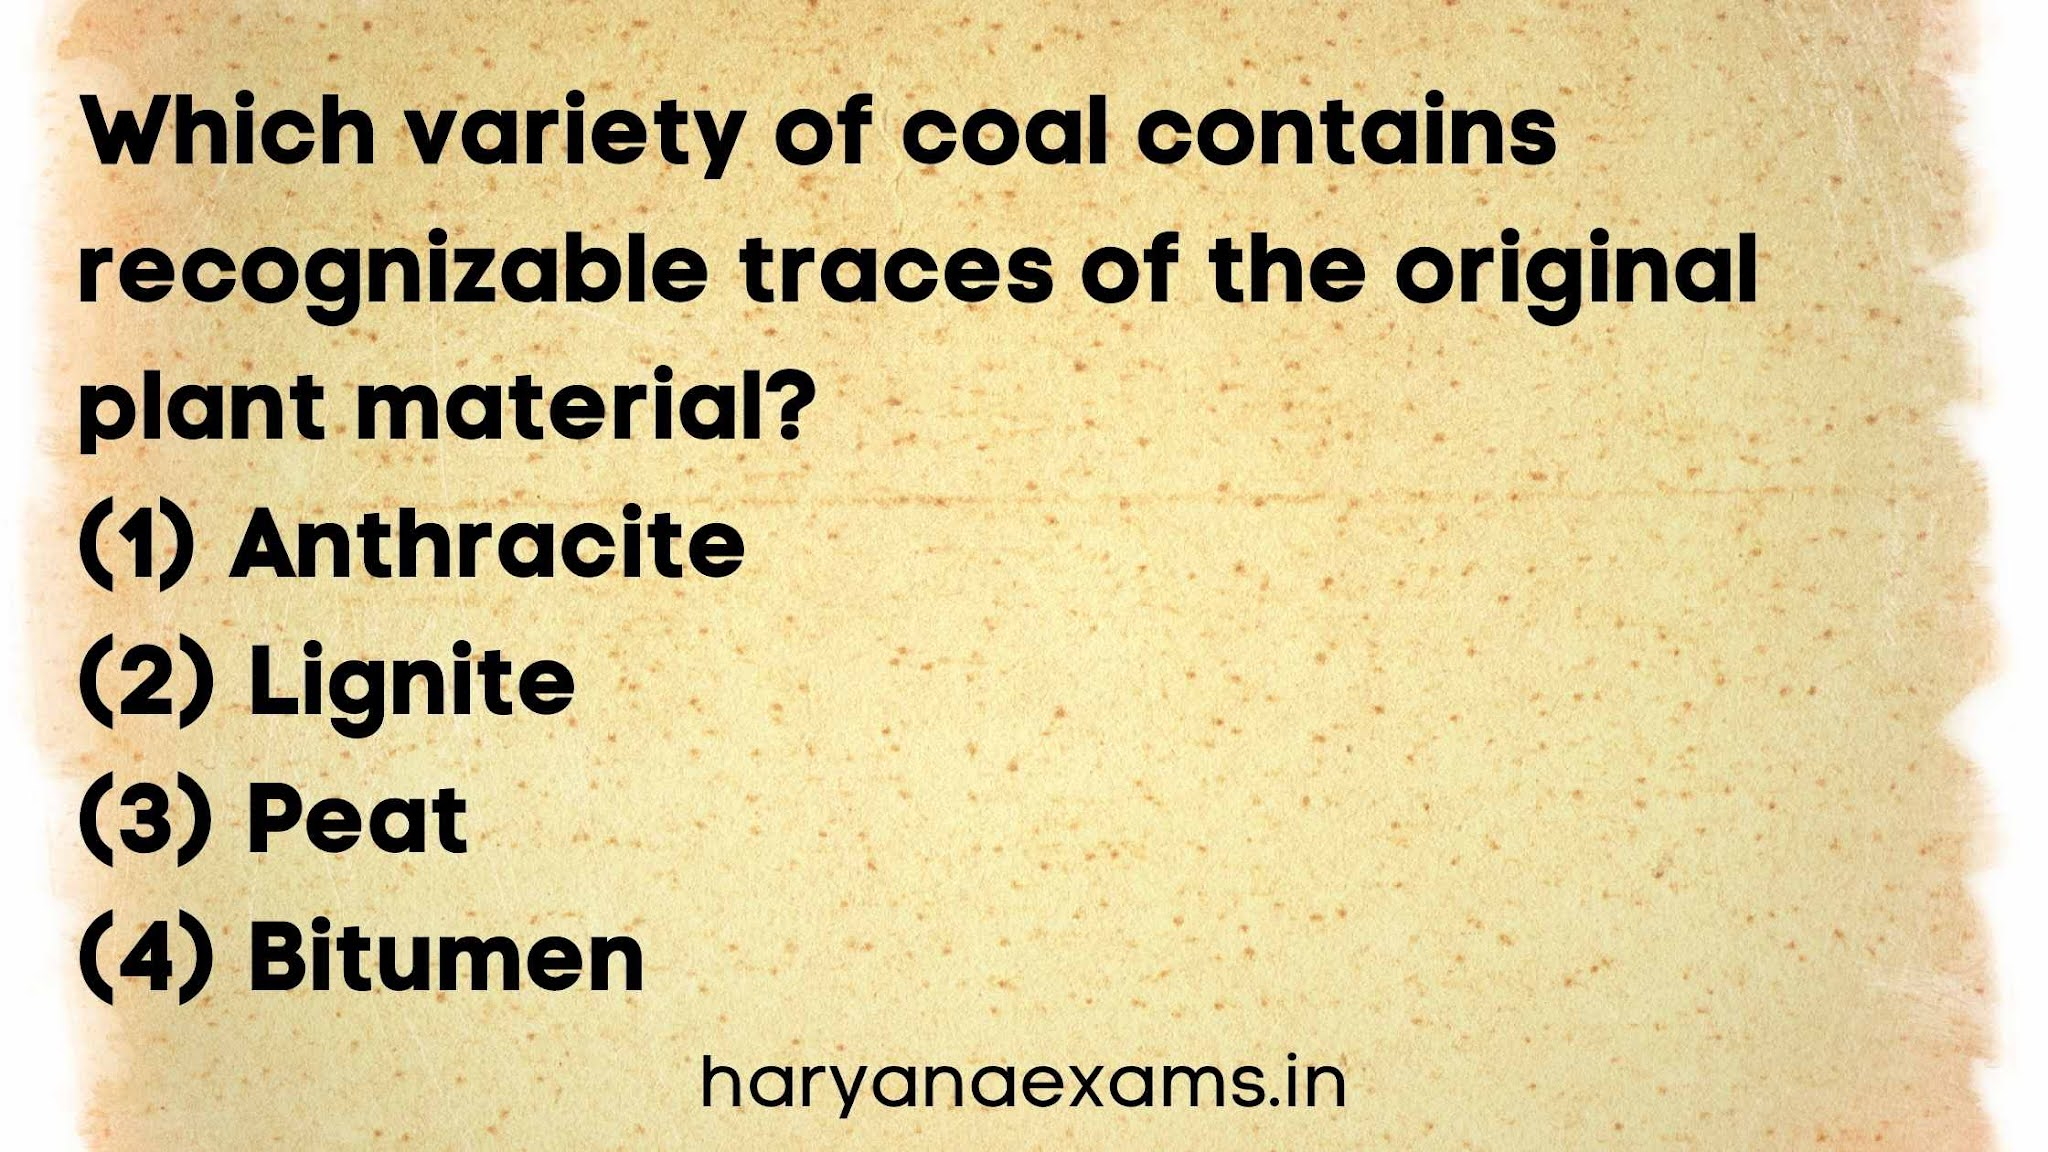 Which variety of coal contains recognizable traces of the original plant material?   (1) Anthracite   (2) Lignite   (3) Peat   (4) Bitumen